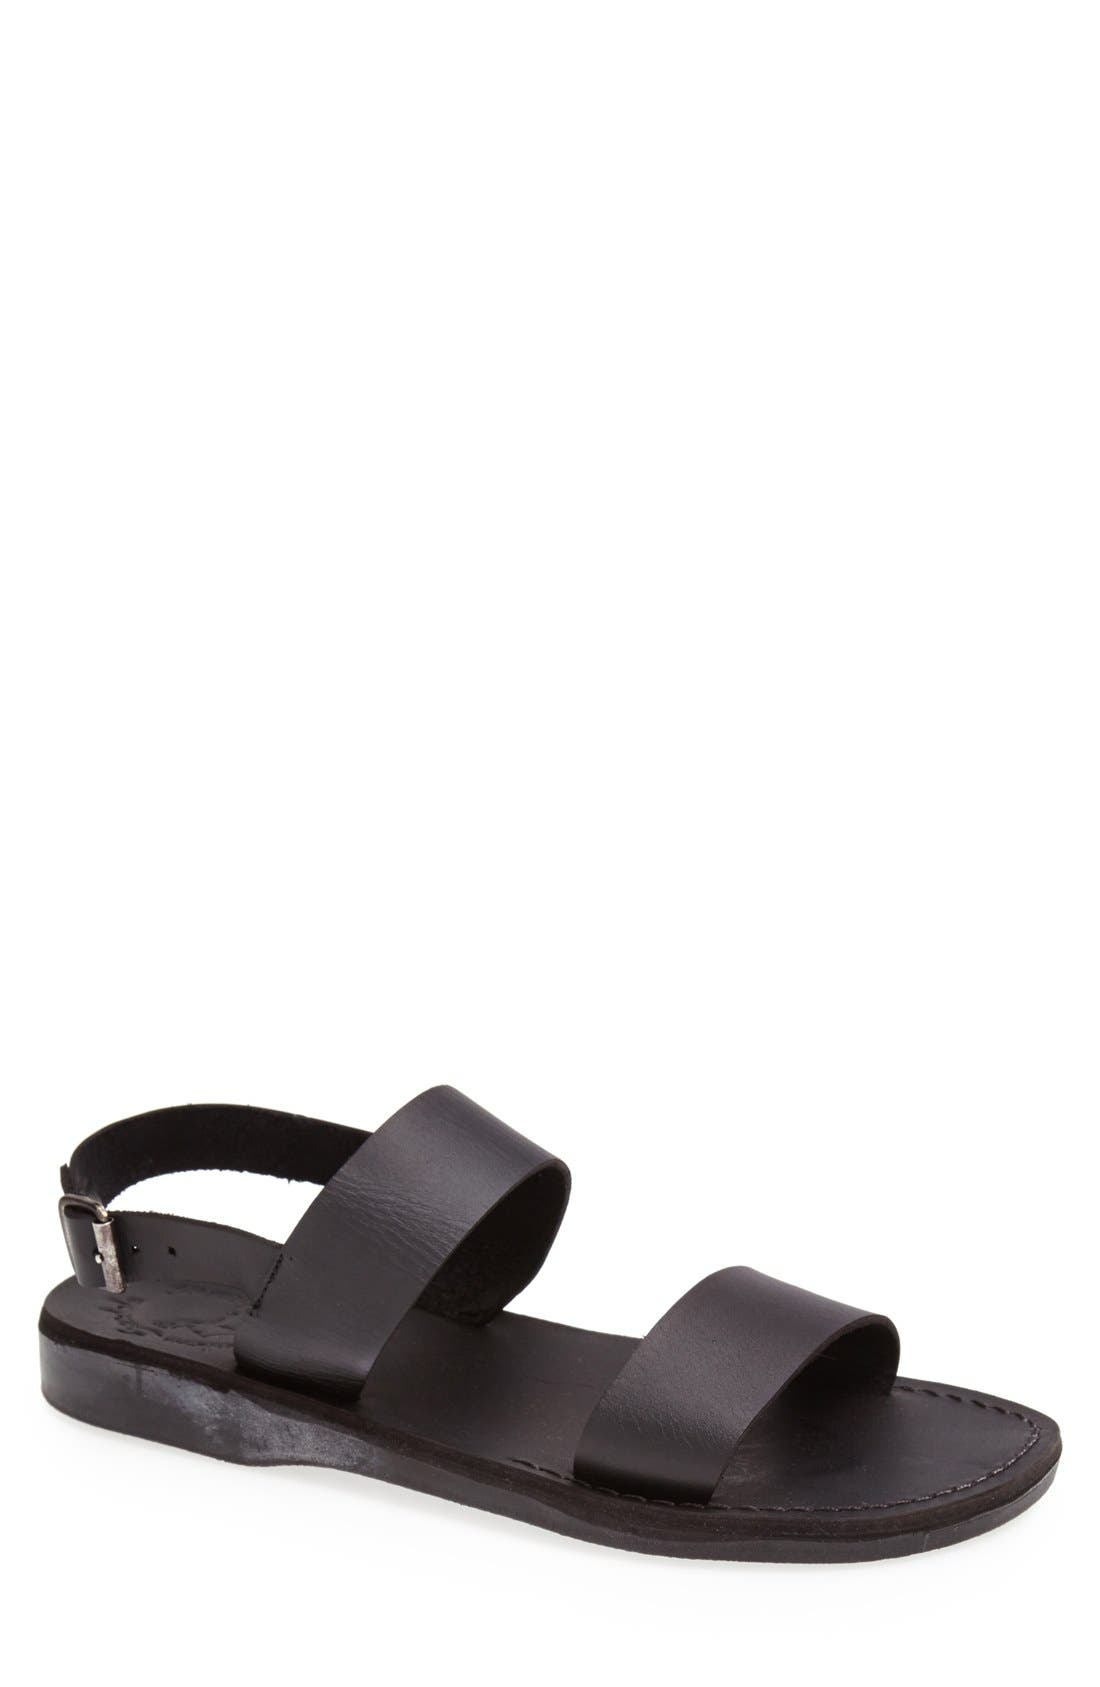 'Golan' Leather Sandal,                         Main,                         color, Black